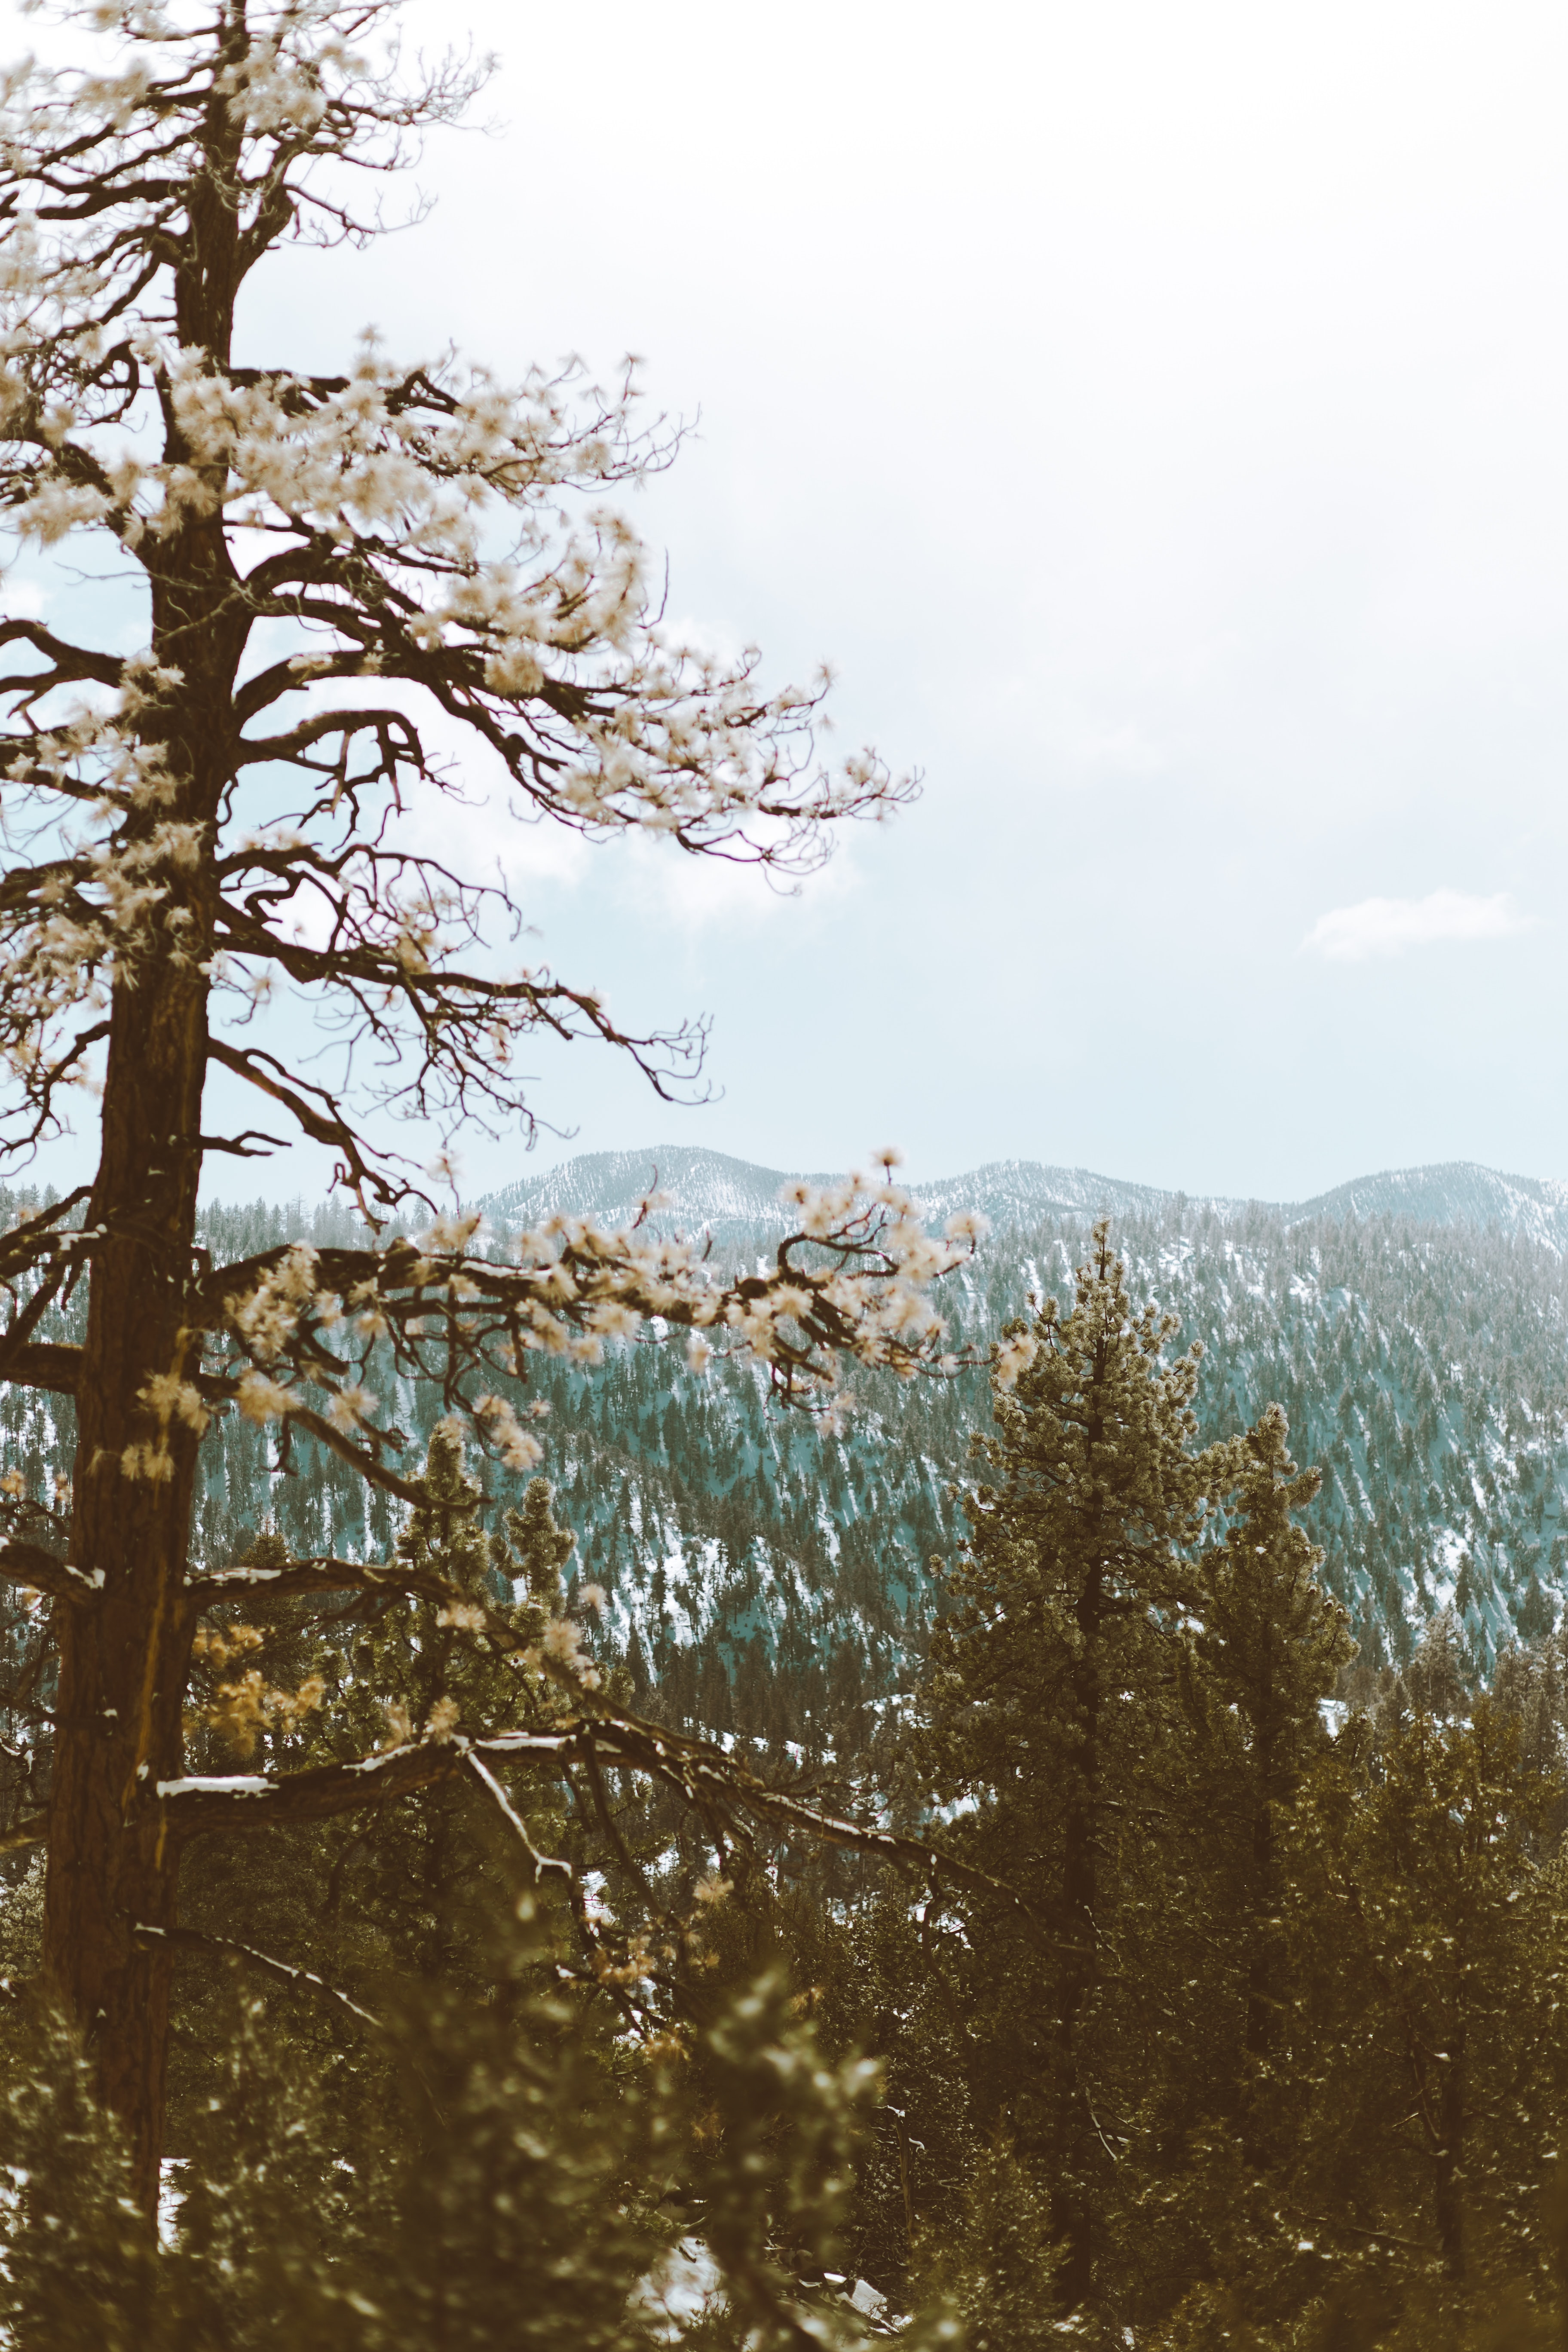 Frost on trees near Big Bear Lake with low mountains on the horizon